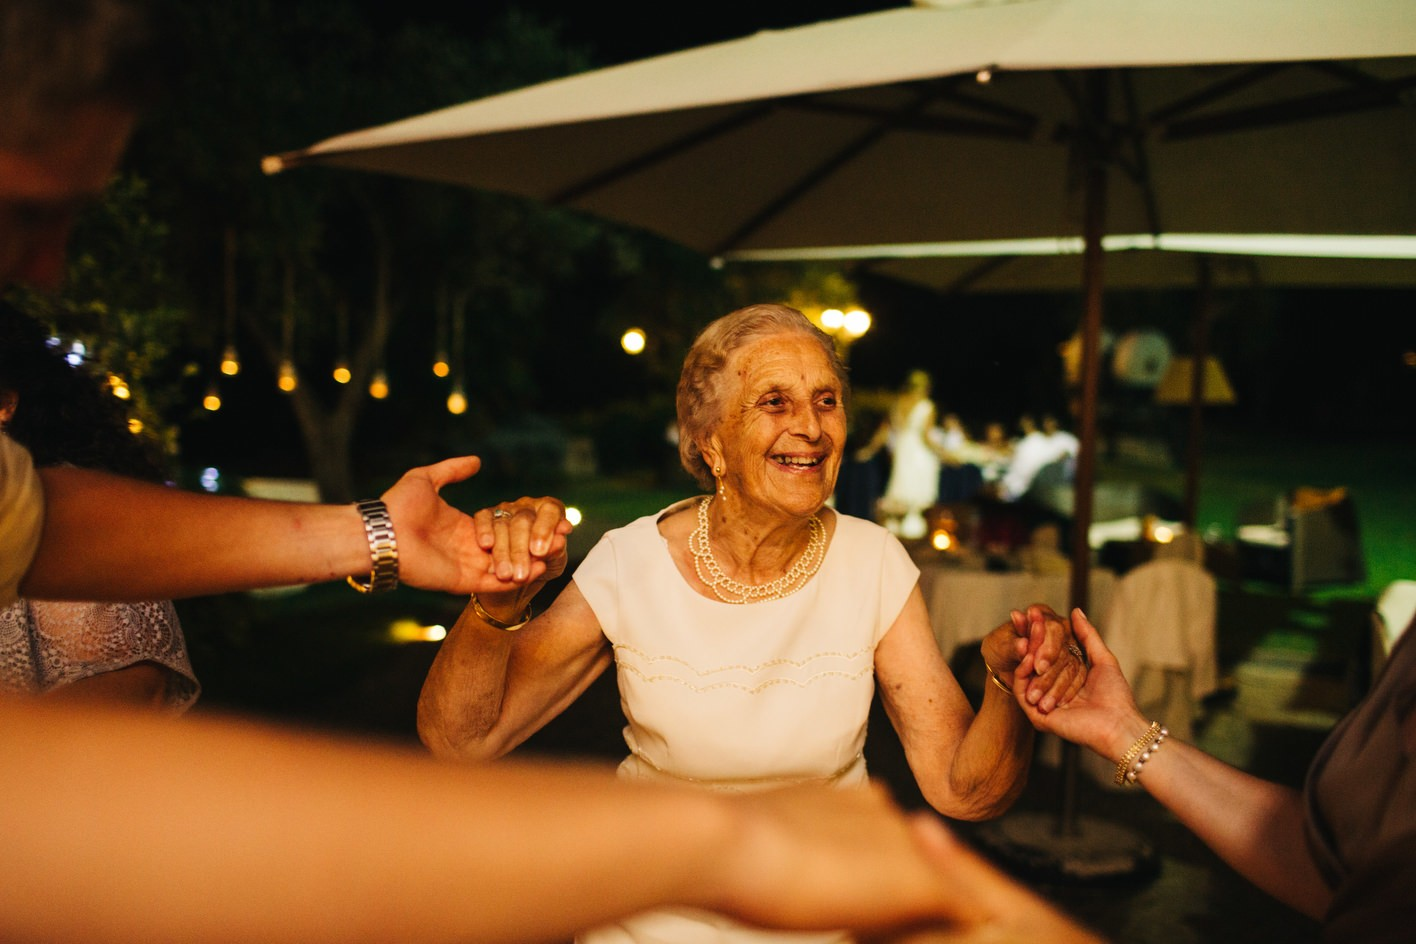 grandma on the dancefloor